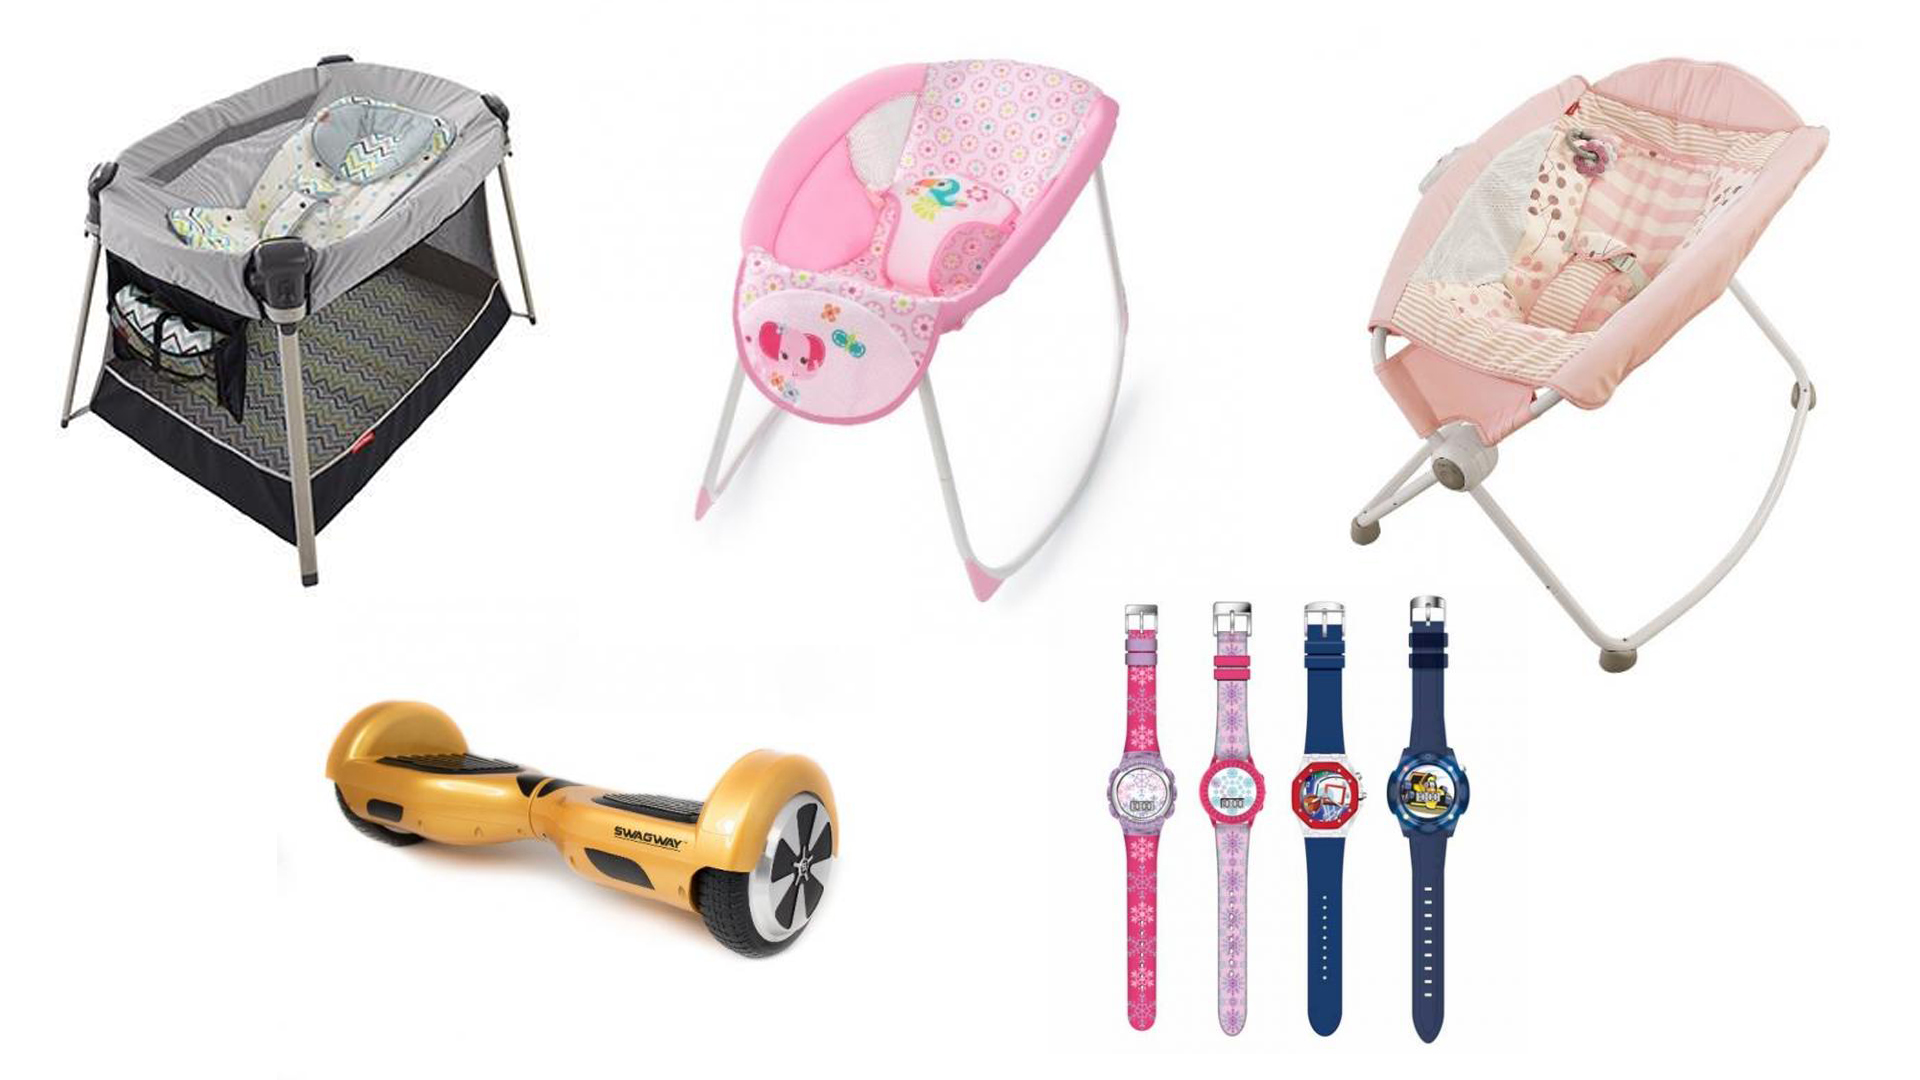 Baby sleepers and other recalled items that were sold at T.J. Maxx, Marshalls and HomeGoods stores. (Credit: U.S. Consumer Product Safety Commission)